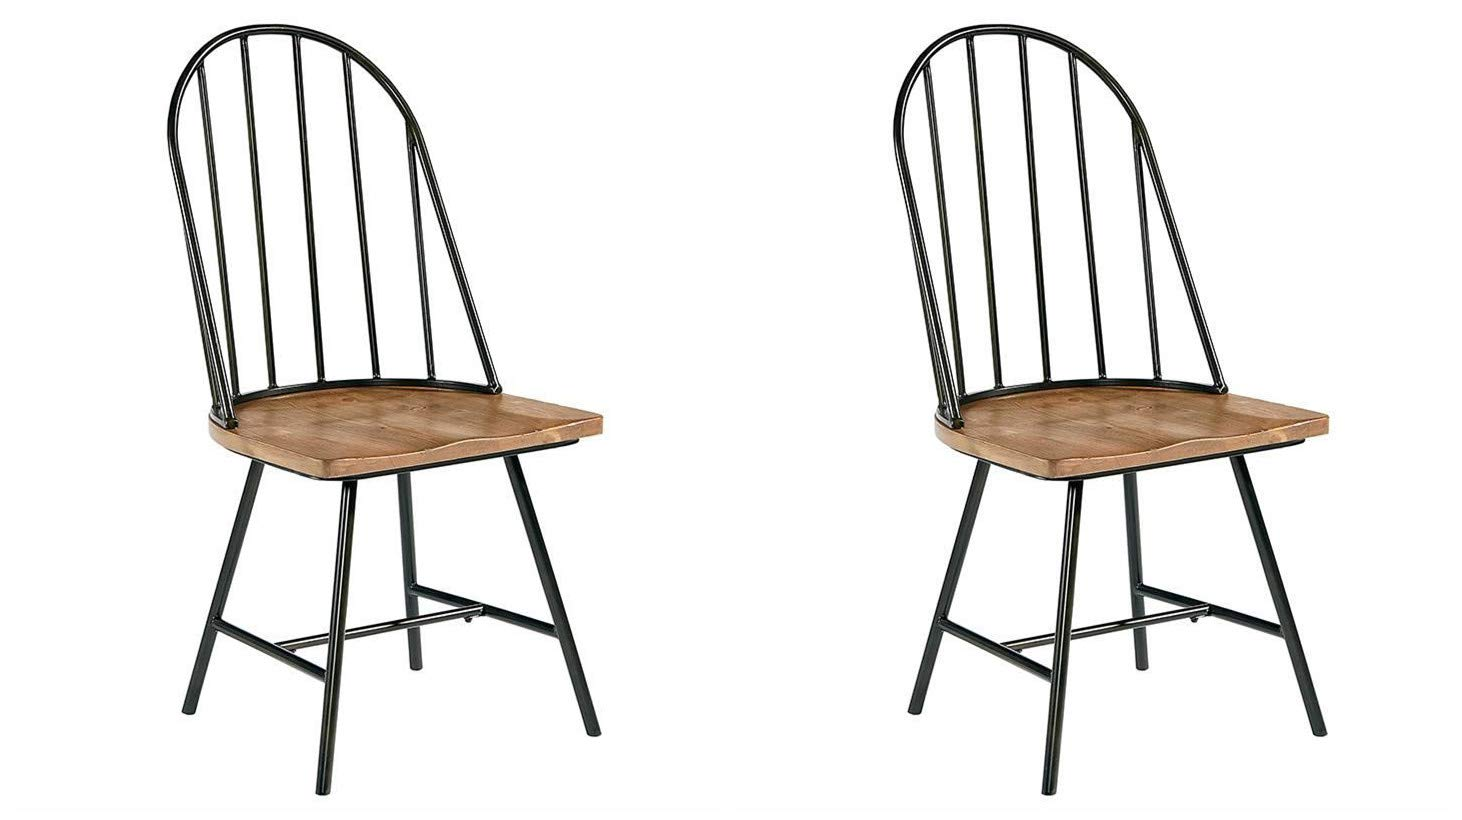 GTU Furniture Set of 2 Mixed Media Spindle Back Dining Chairs with Saddle Seat, Set of 2, Black/Brown